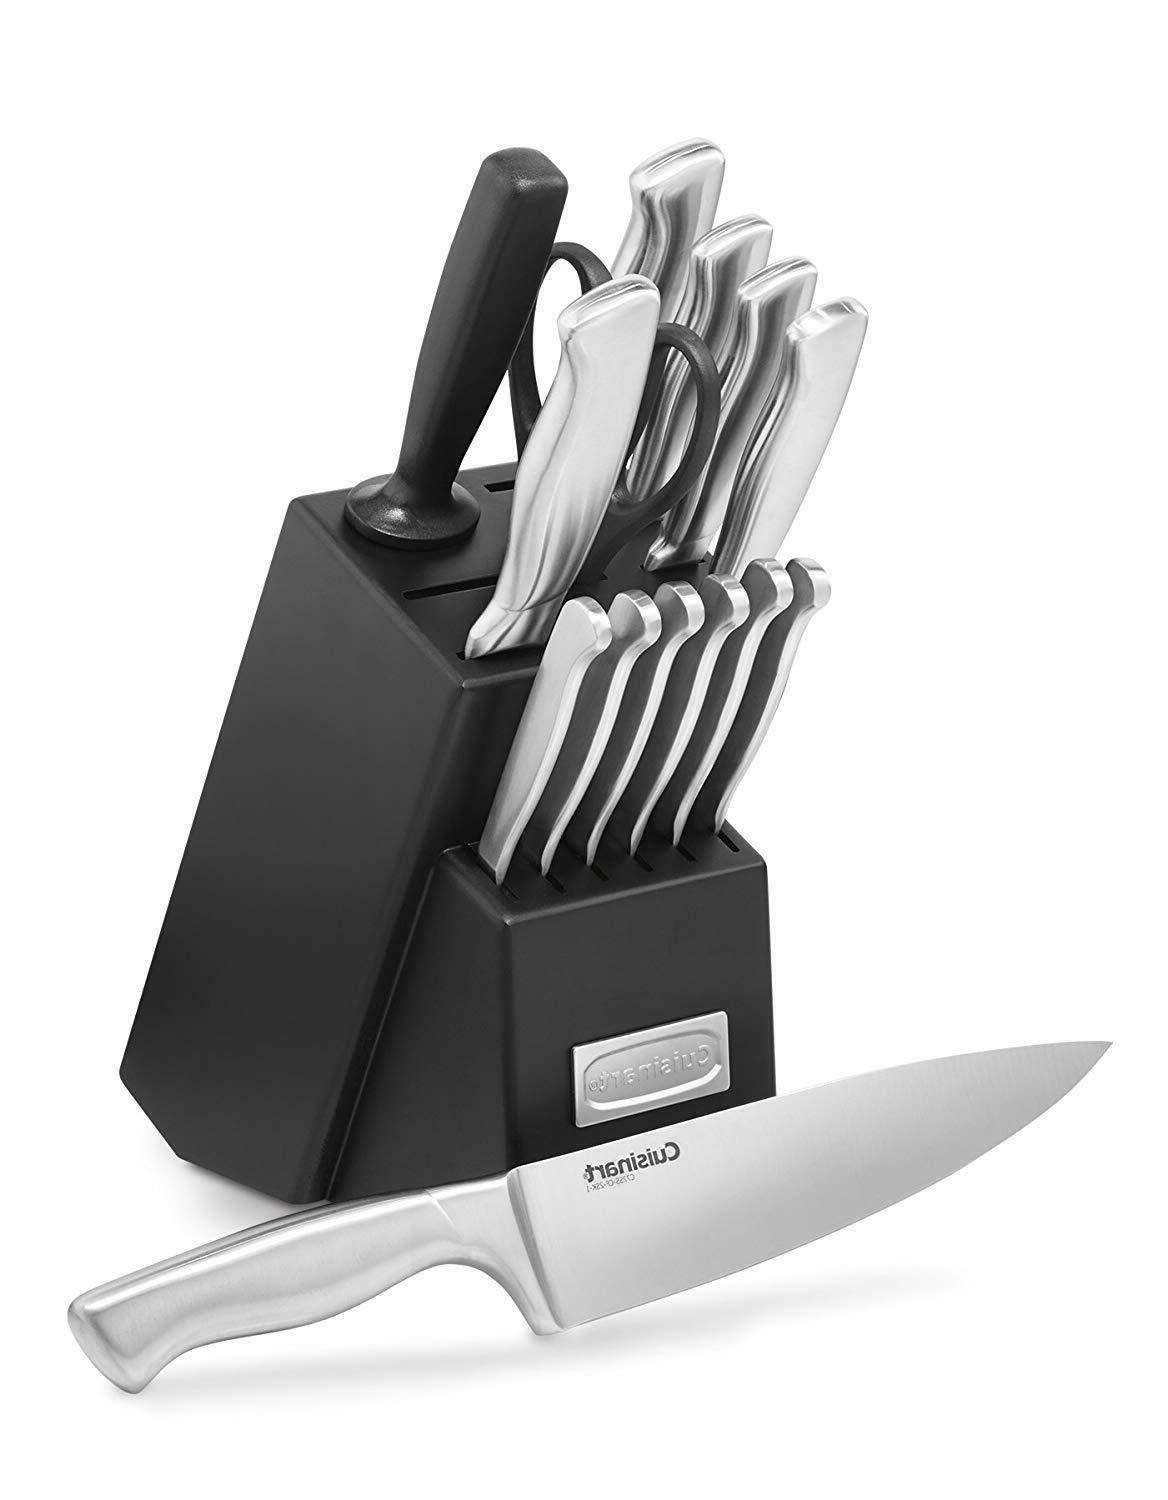 15-Piece Kitchen Knife Block Set Cutlery Sharp Carbon Stainl